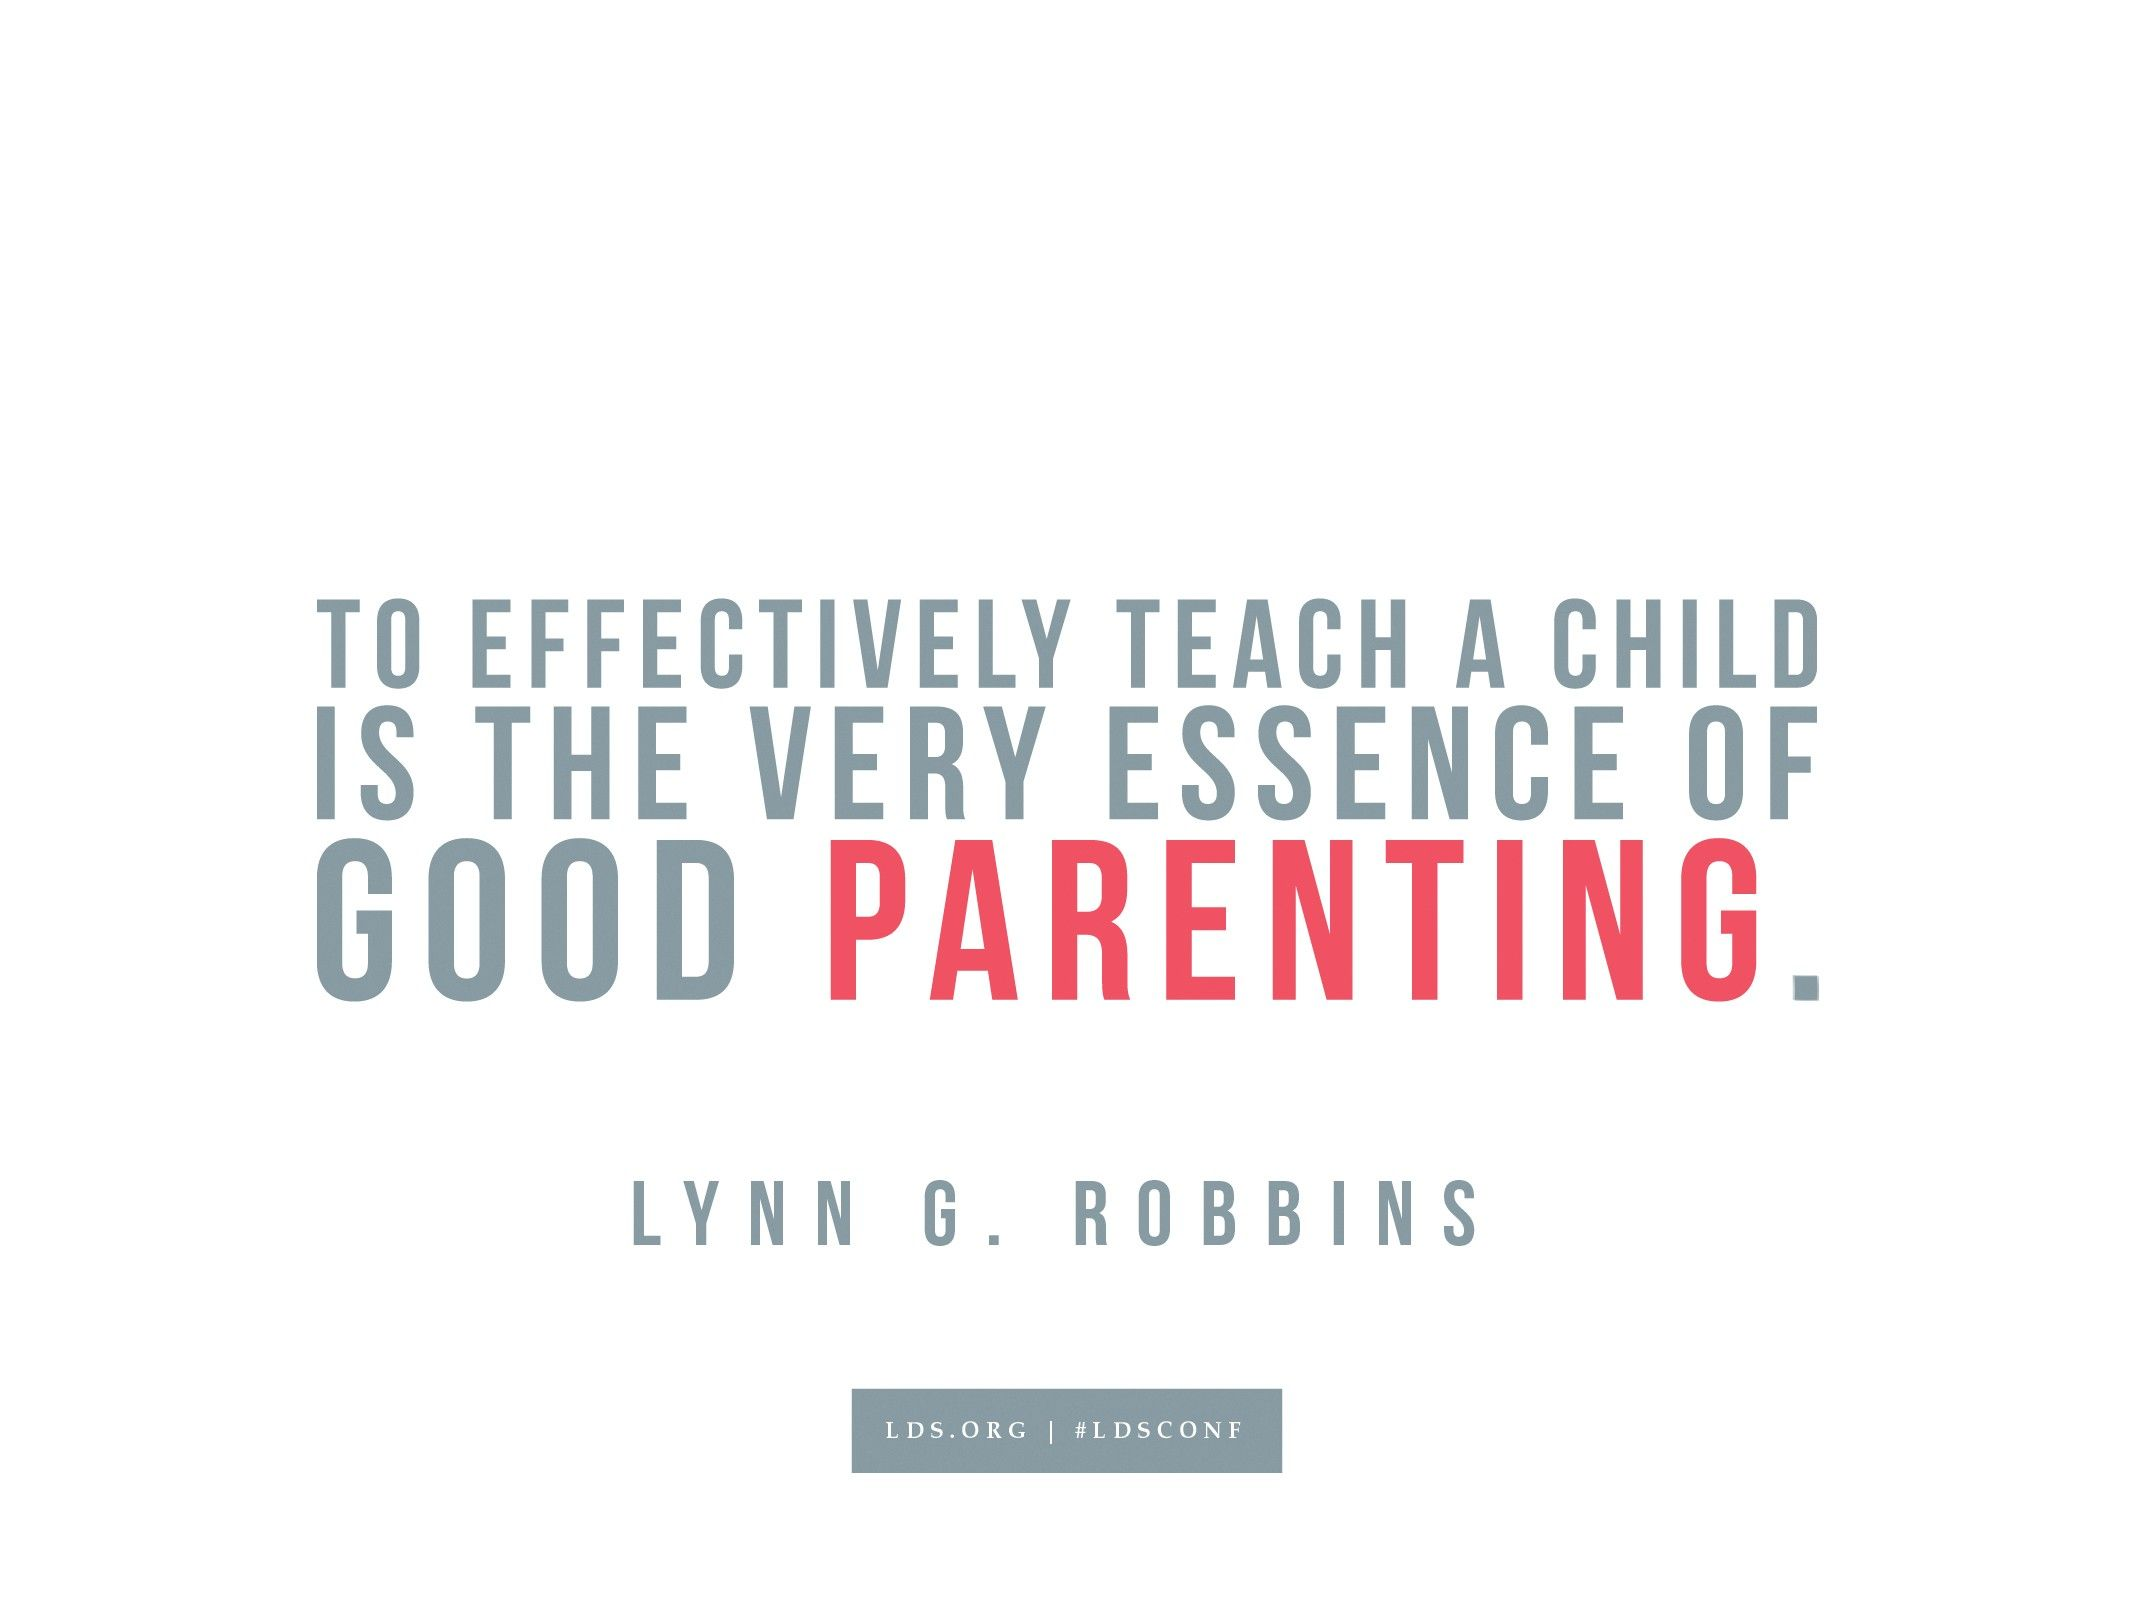 """""""To effectively teach a child is the very essence of good parenting.""""—Lynn G. Robbins, """"The Righteous Judge"""""""